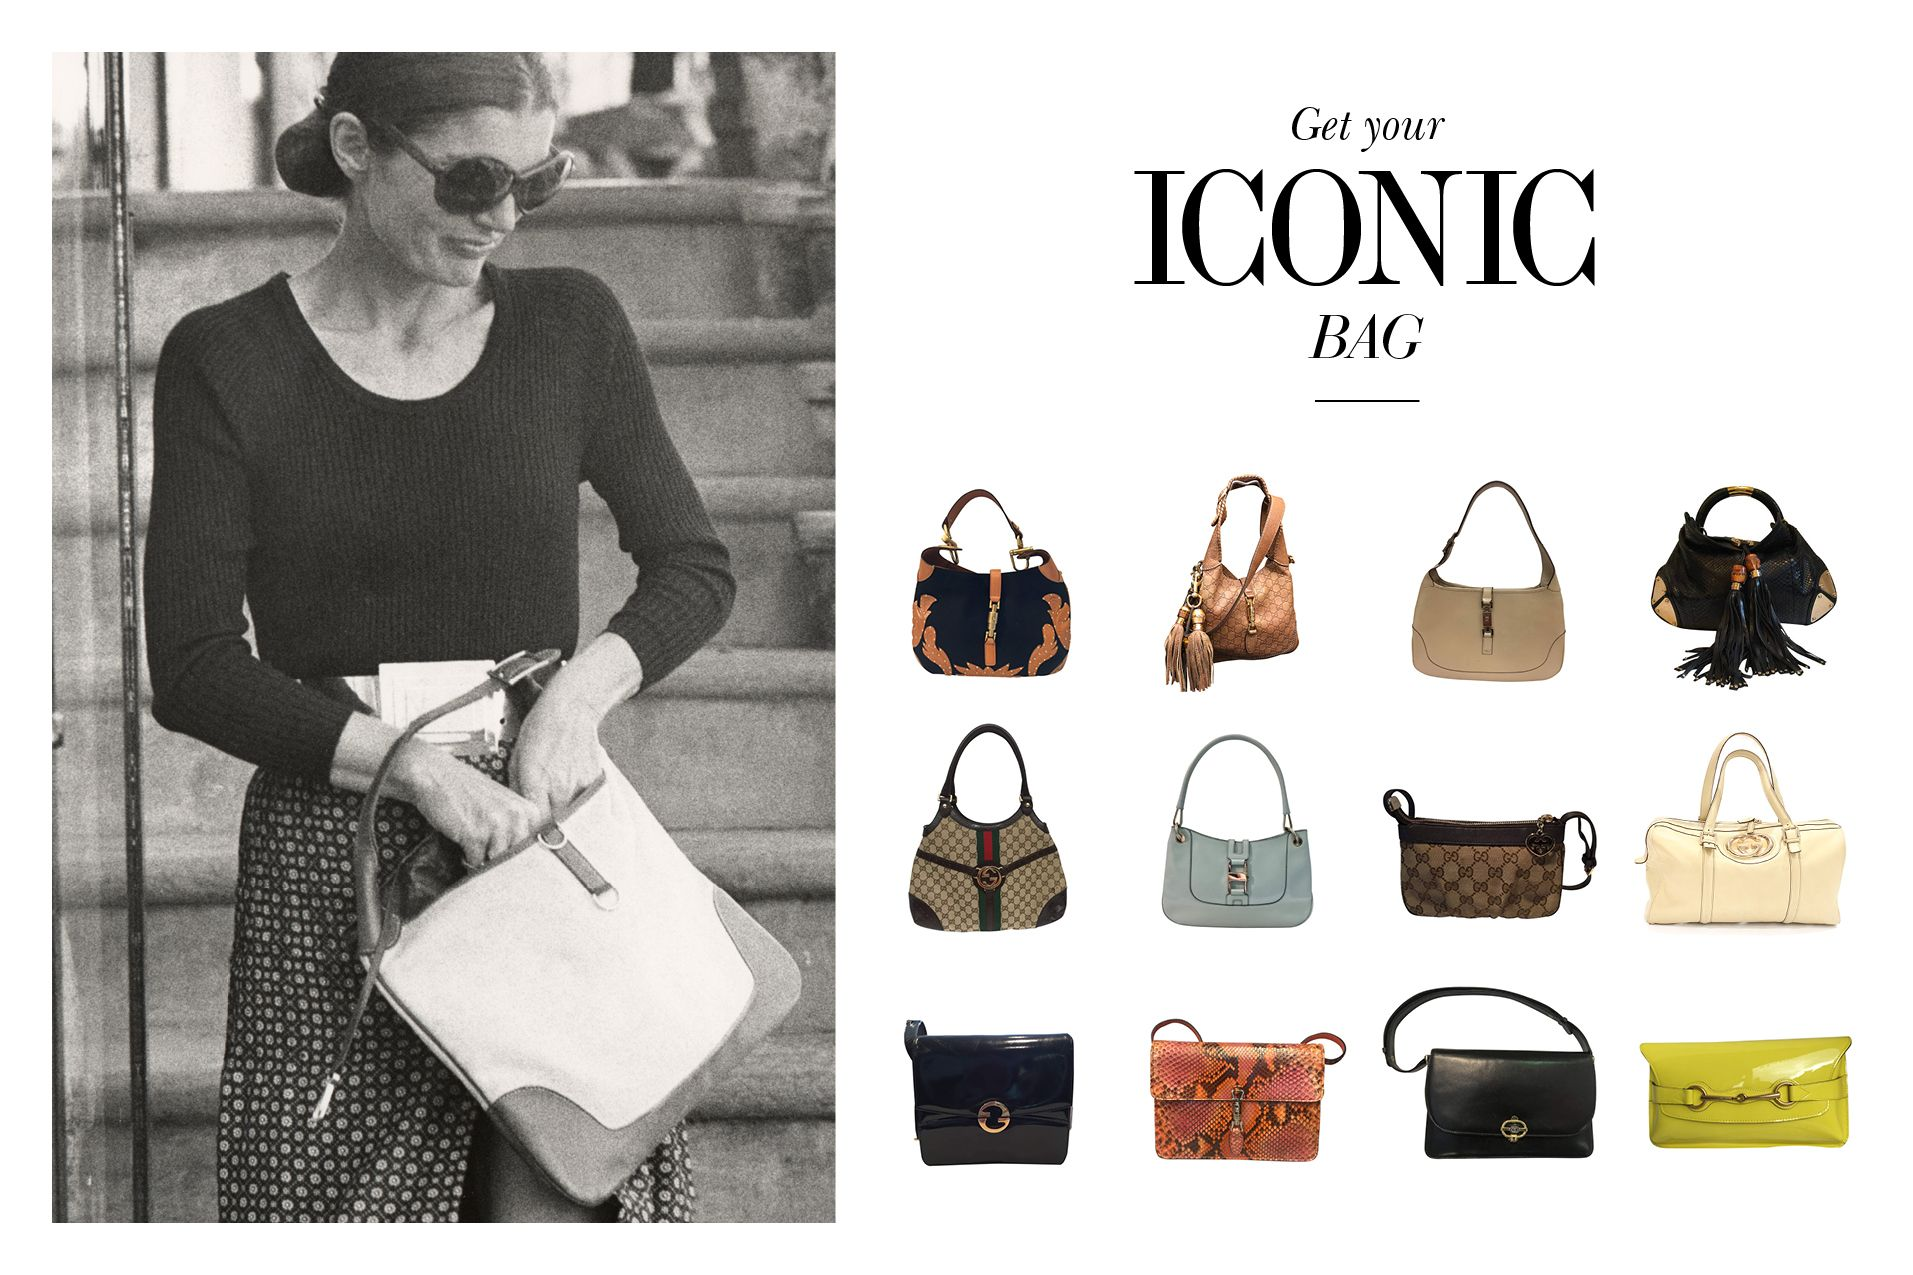 Pin By The Chic Selection On The Chic Selection Windows Vintage Designer Clothing Online Vintage Stores Iconic Bags